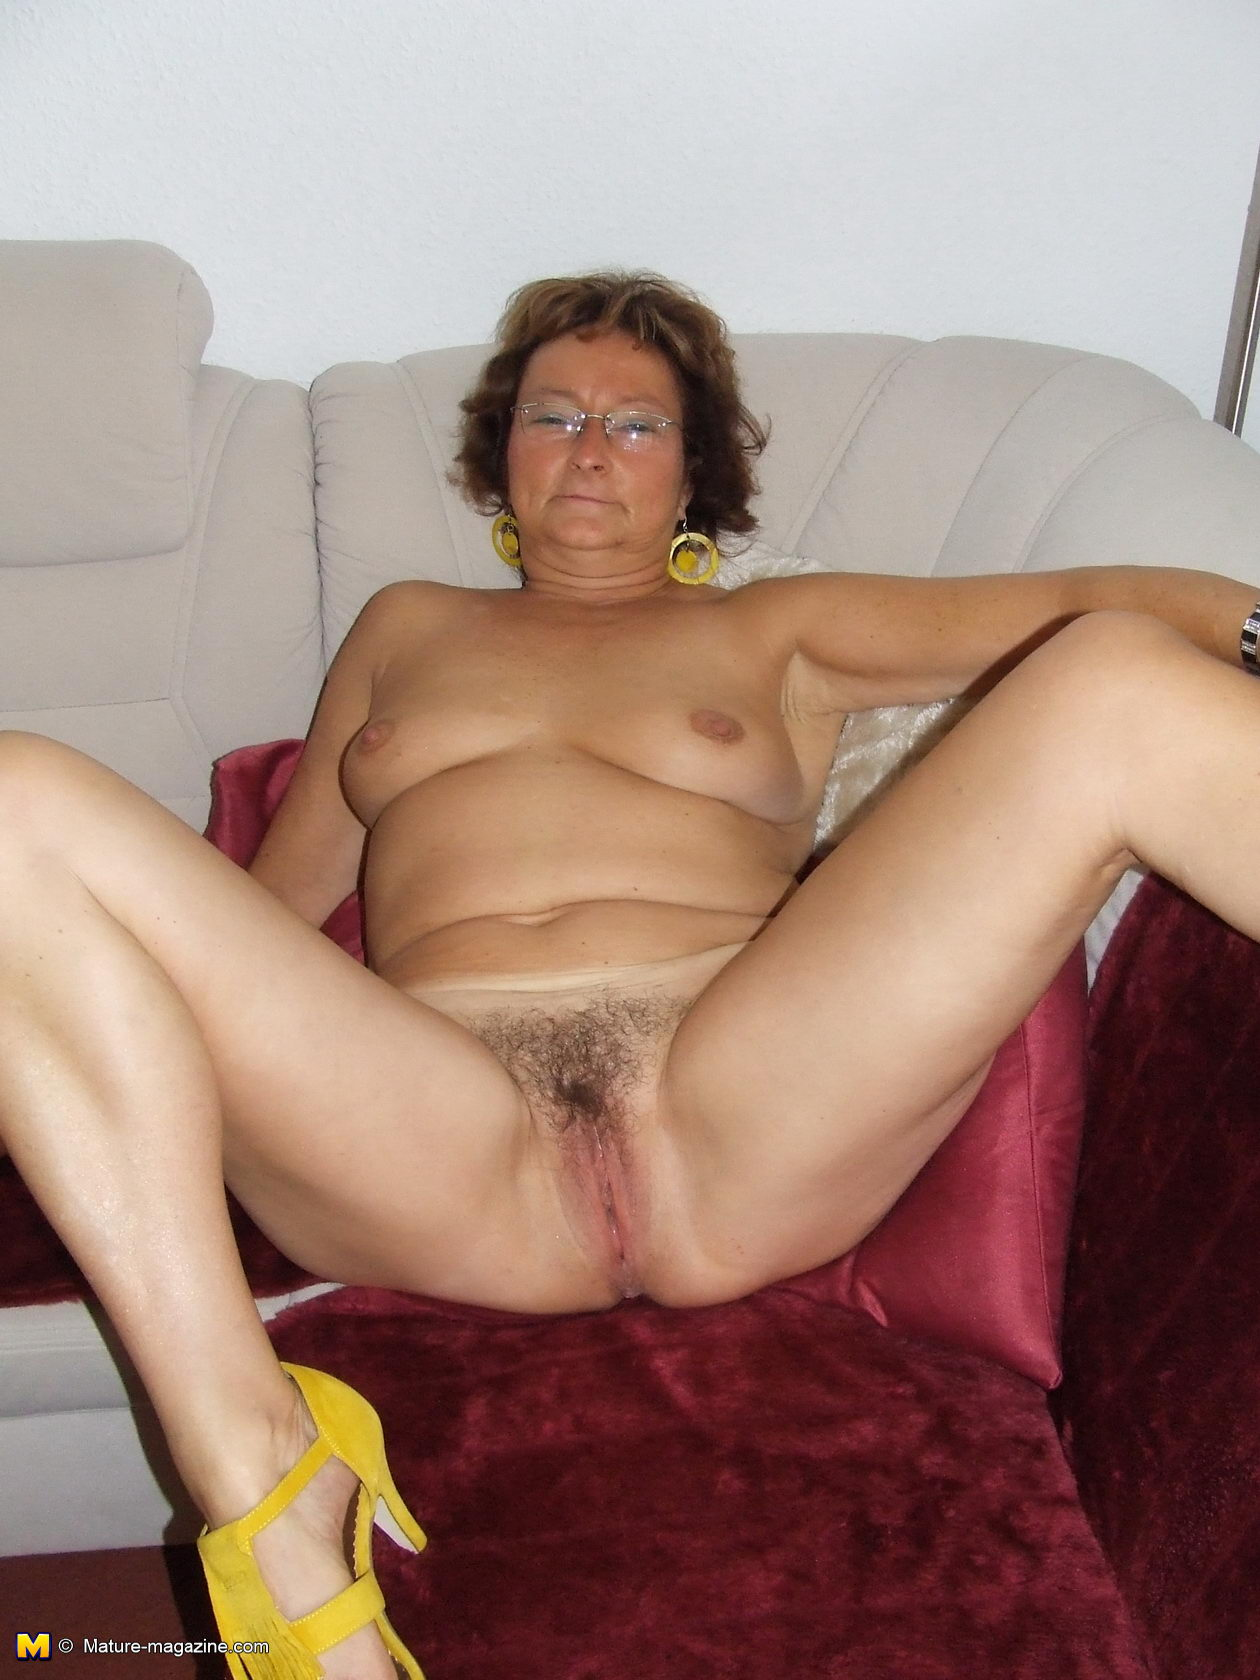 Hairy nude mom any